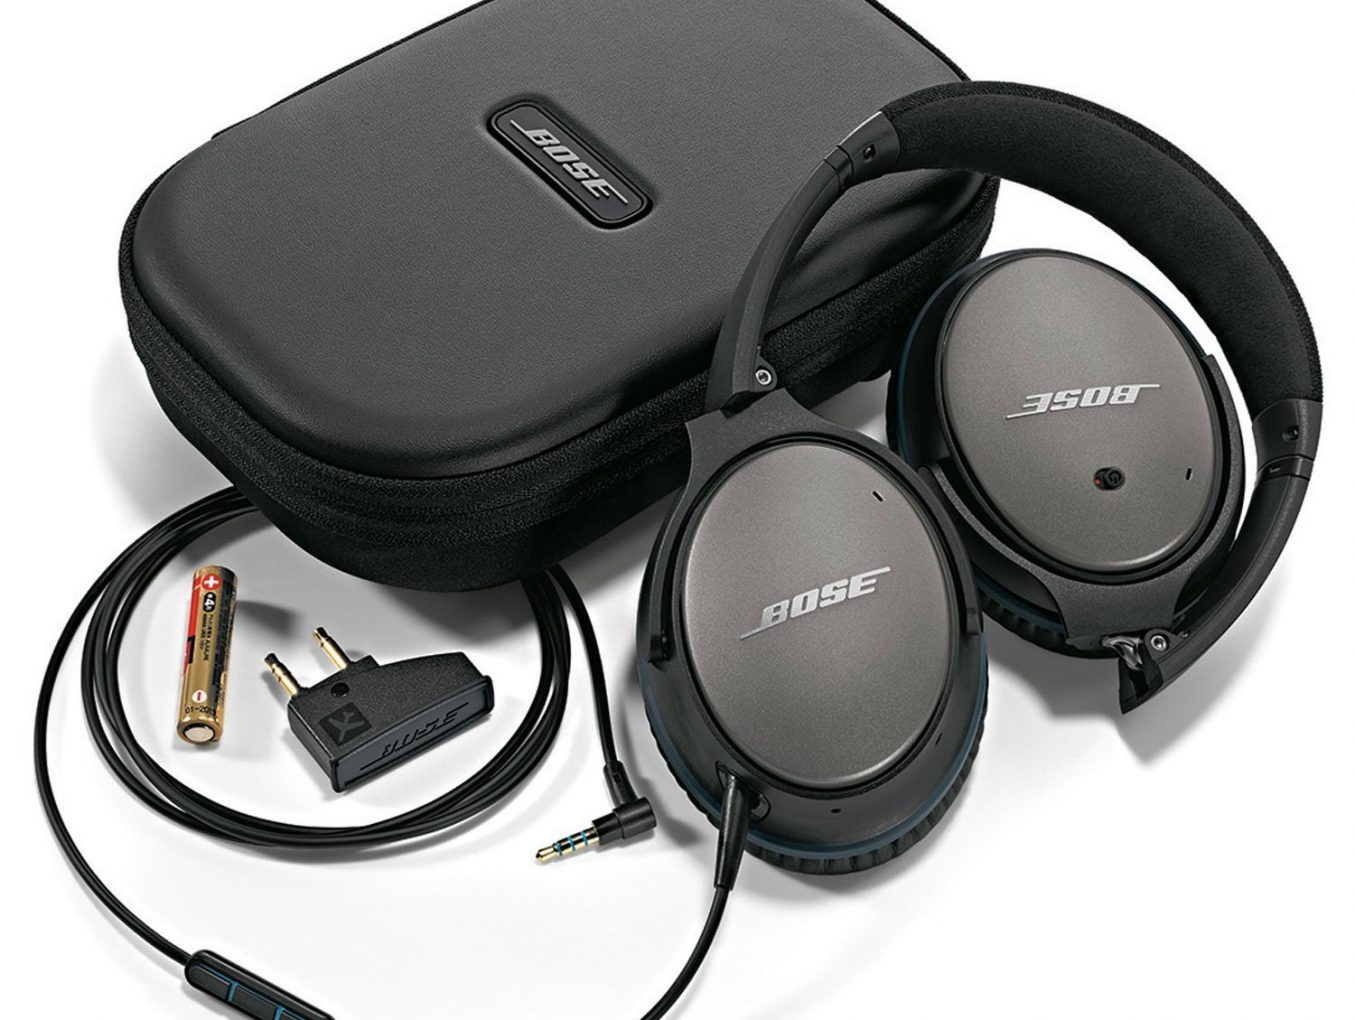 $100 Off Bose QC25s - Black Friday Sale!!!